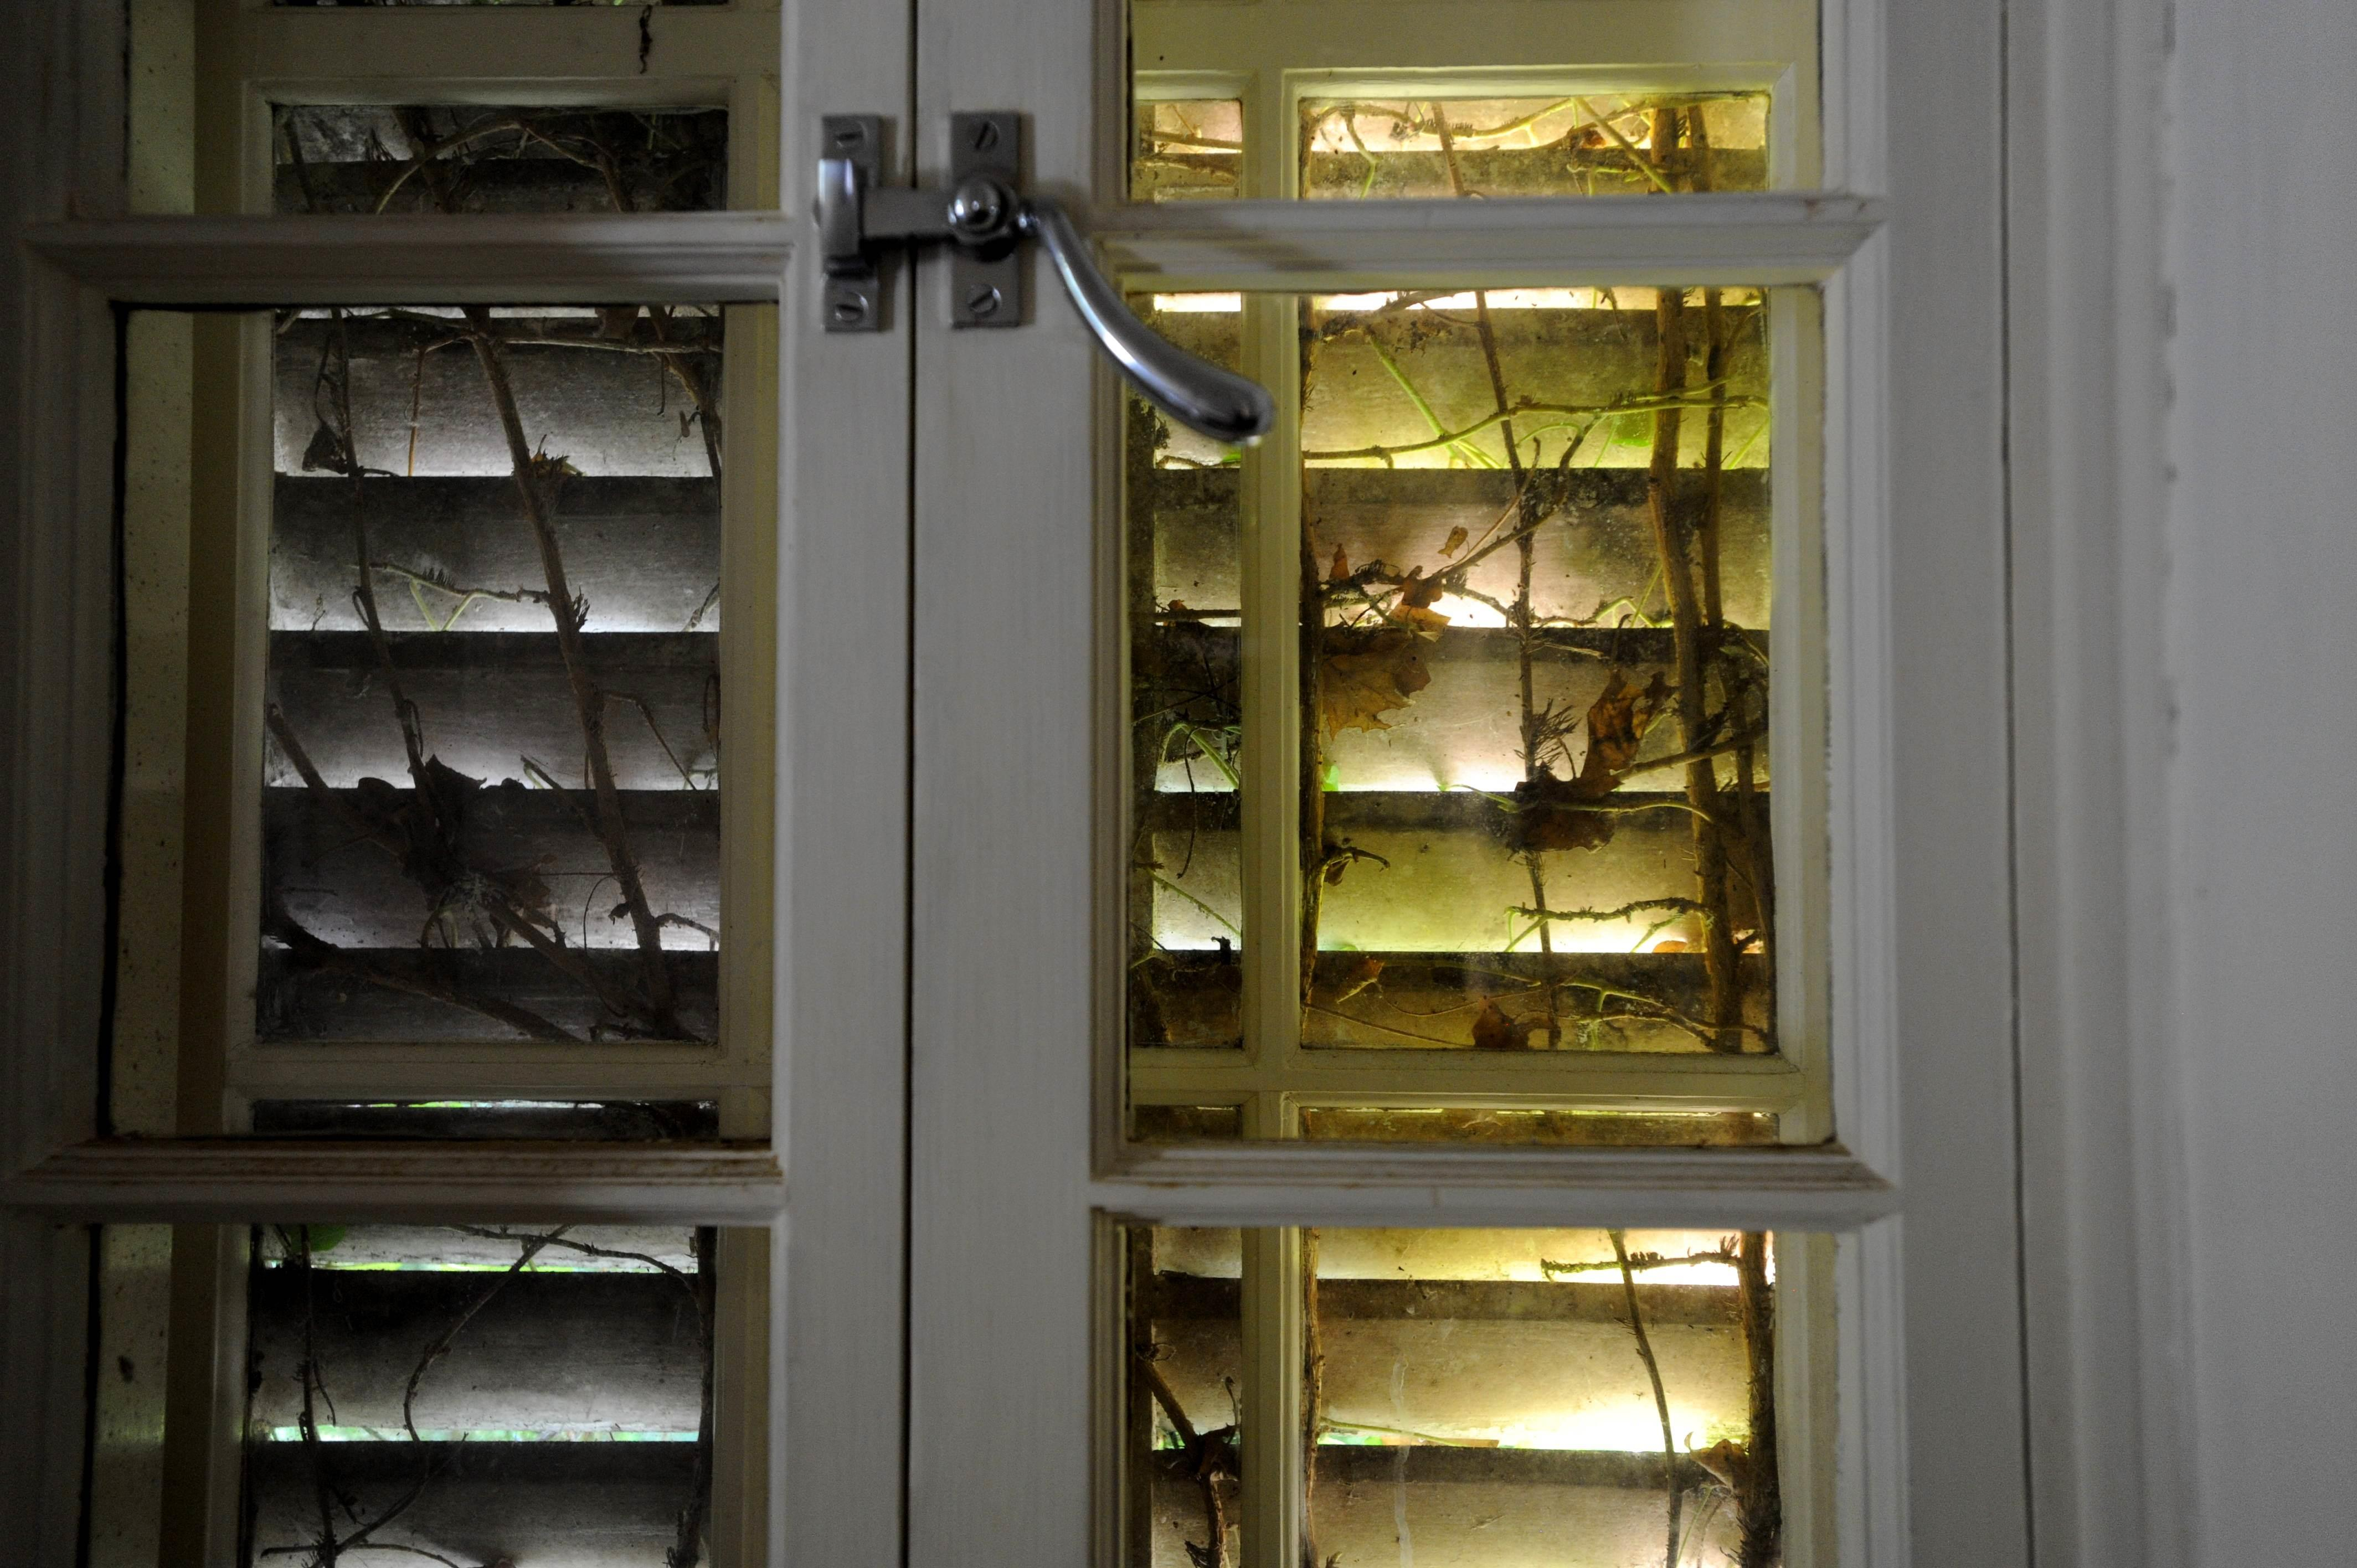 Creeping vines have the kitchen shutters firmly in their grasp at Huguette Clark's retreat in New Canaan, Connecticut.